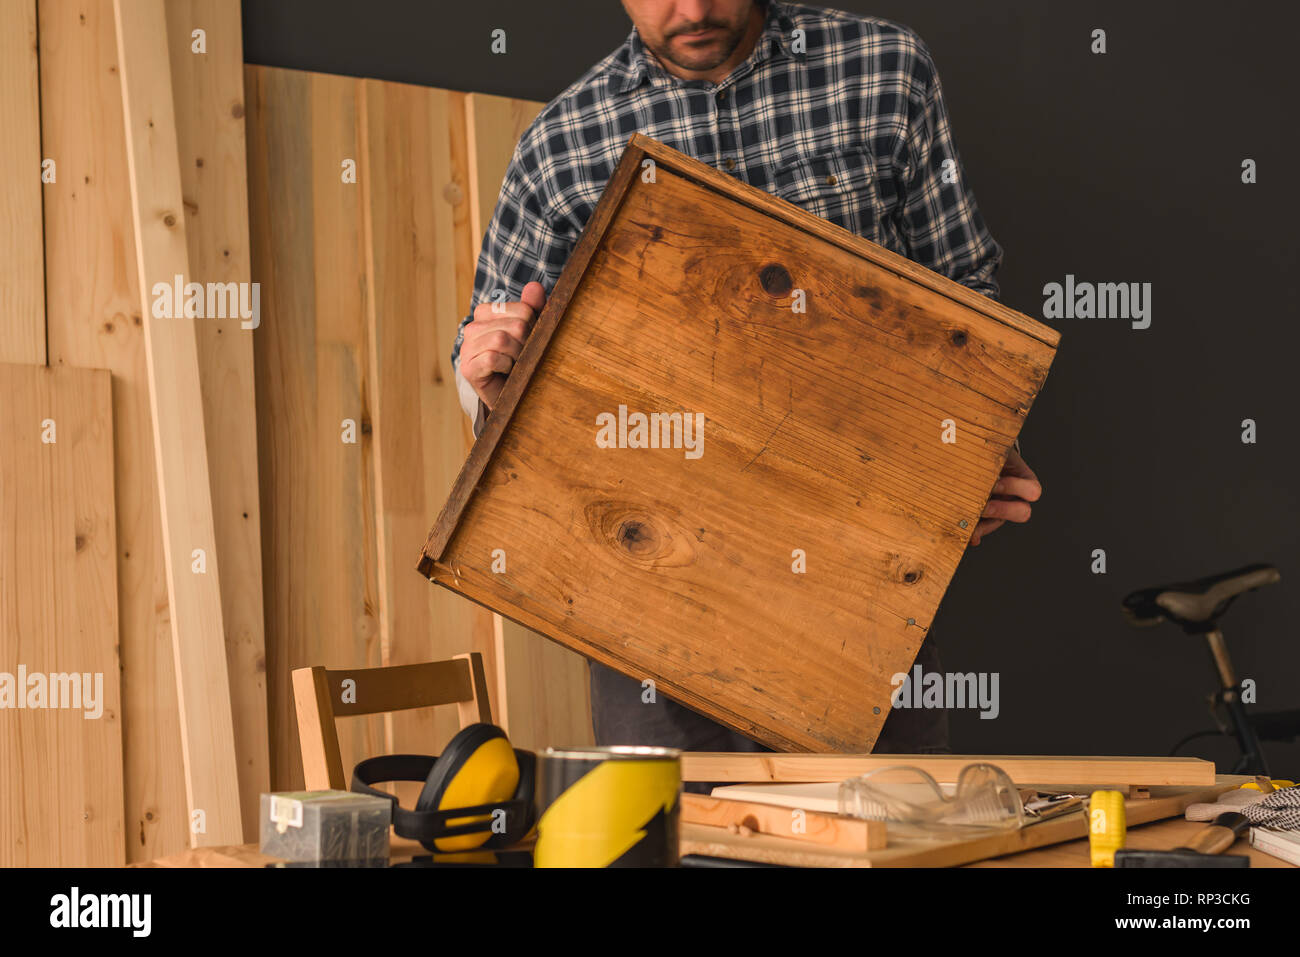 Carpenter repairing old wooden drawer in small business woodwork workshop Stock Photo